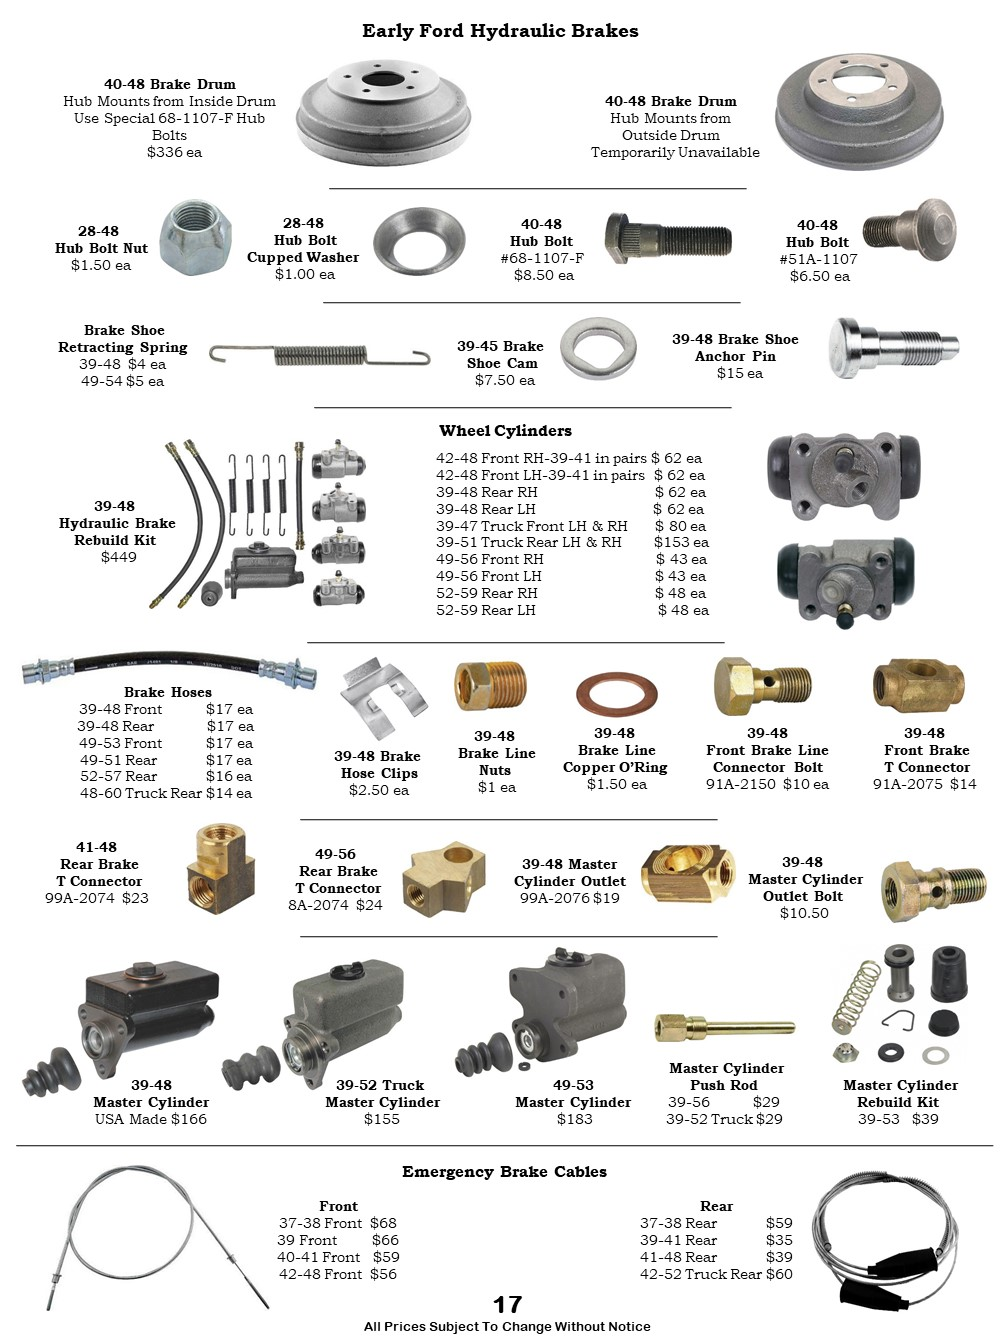 Car Brakes, Master Cylinders, Boosters, Brake Fittings